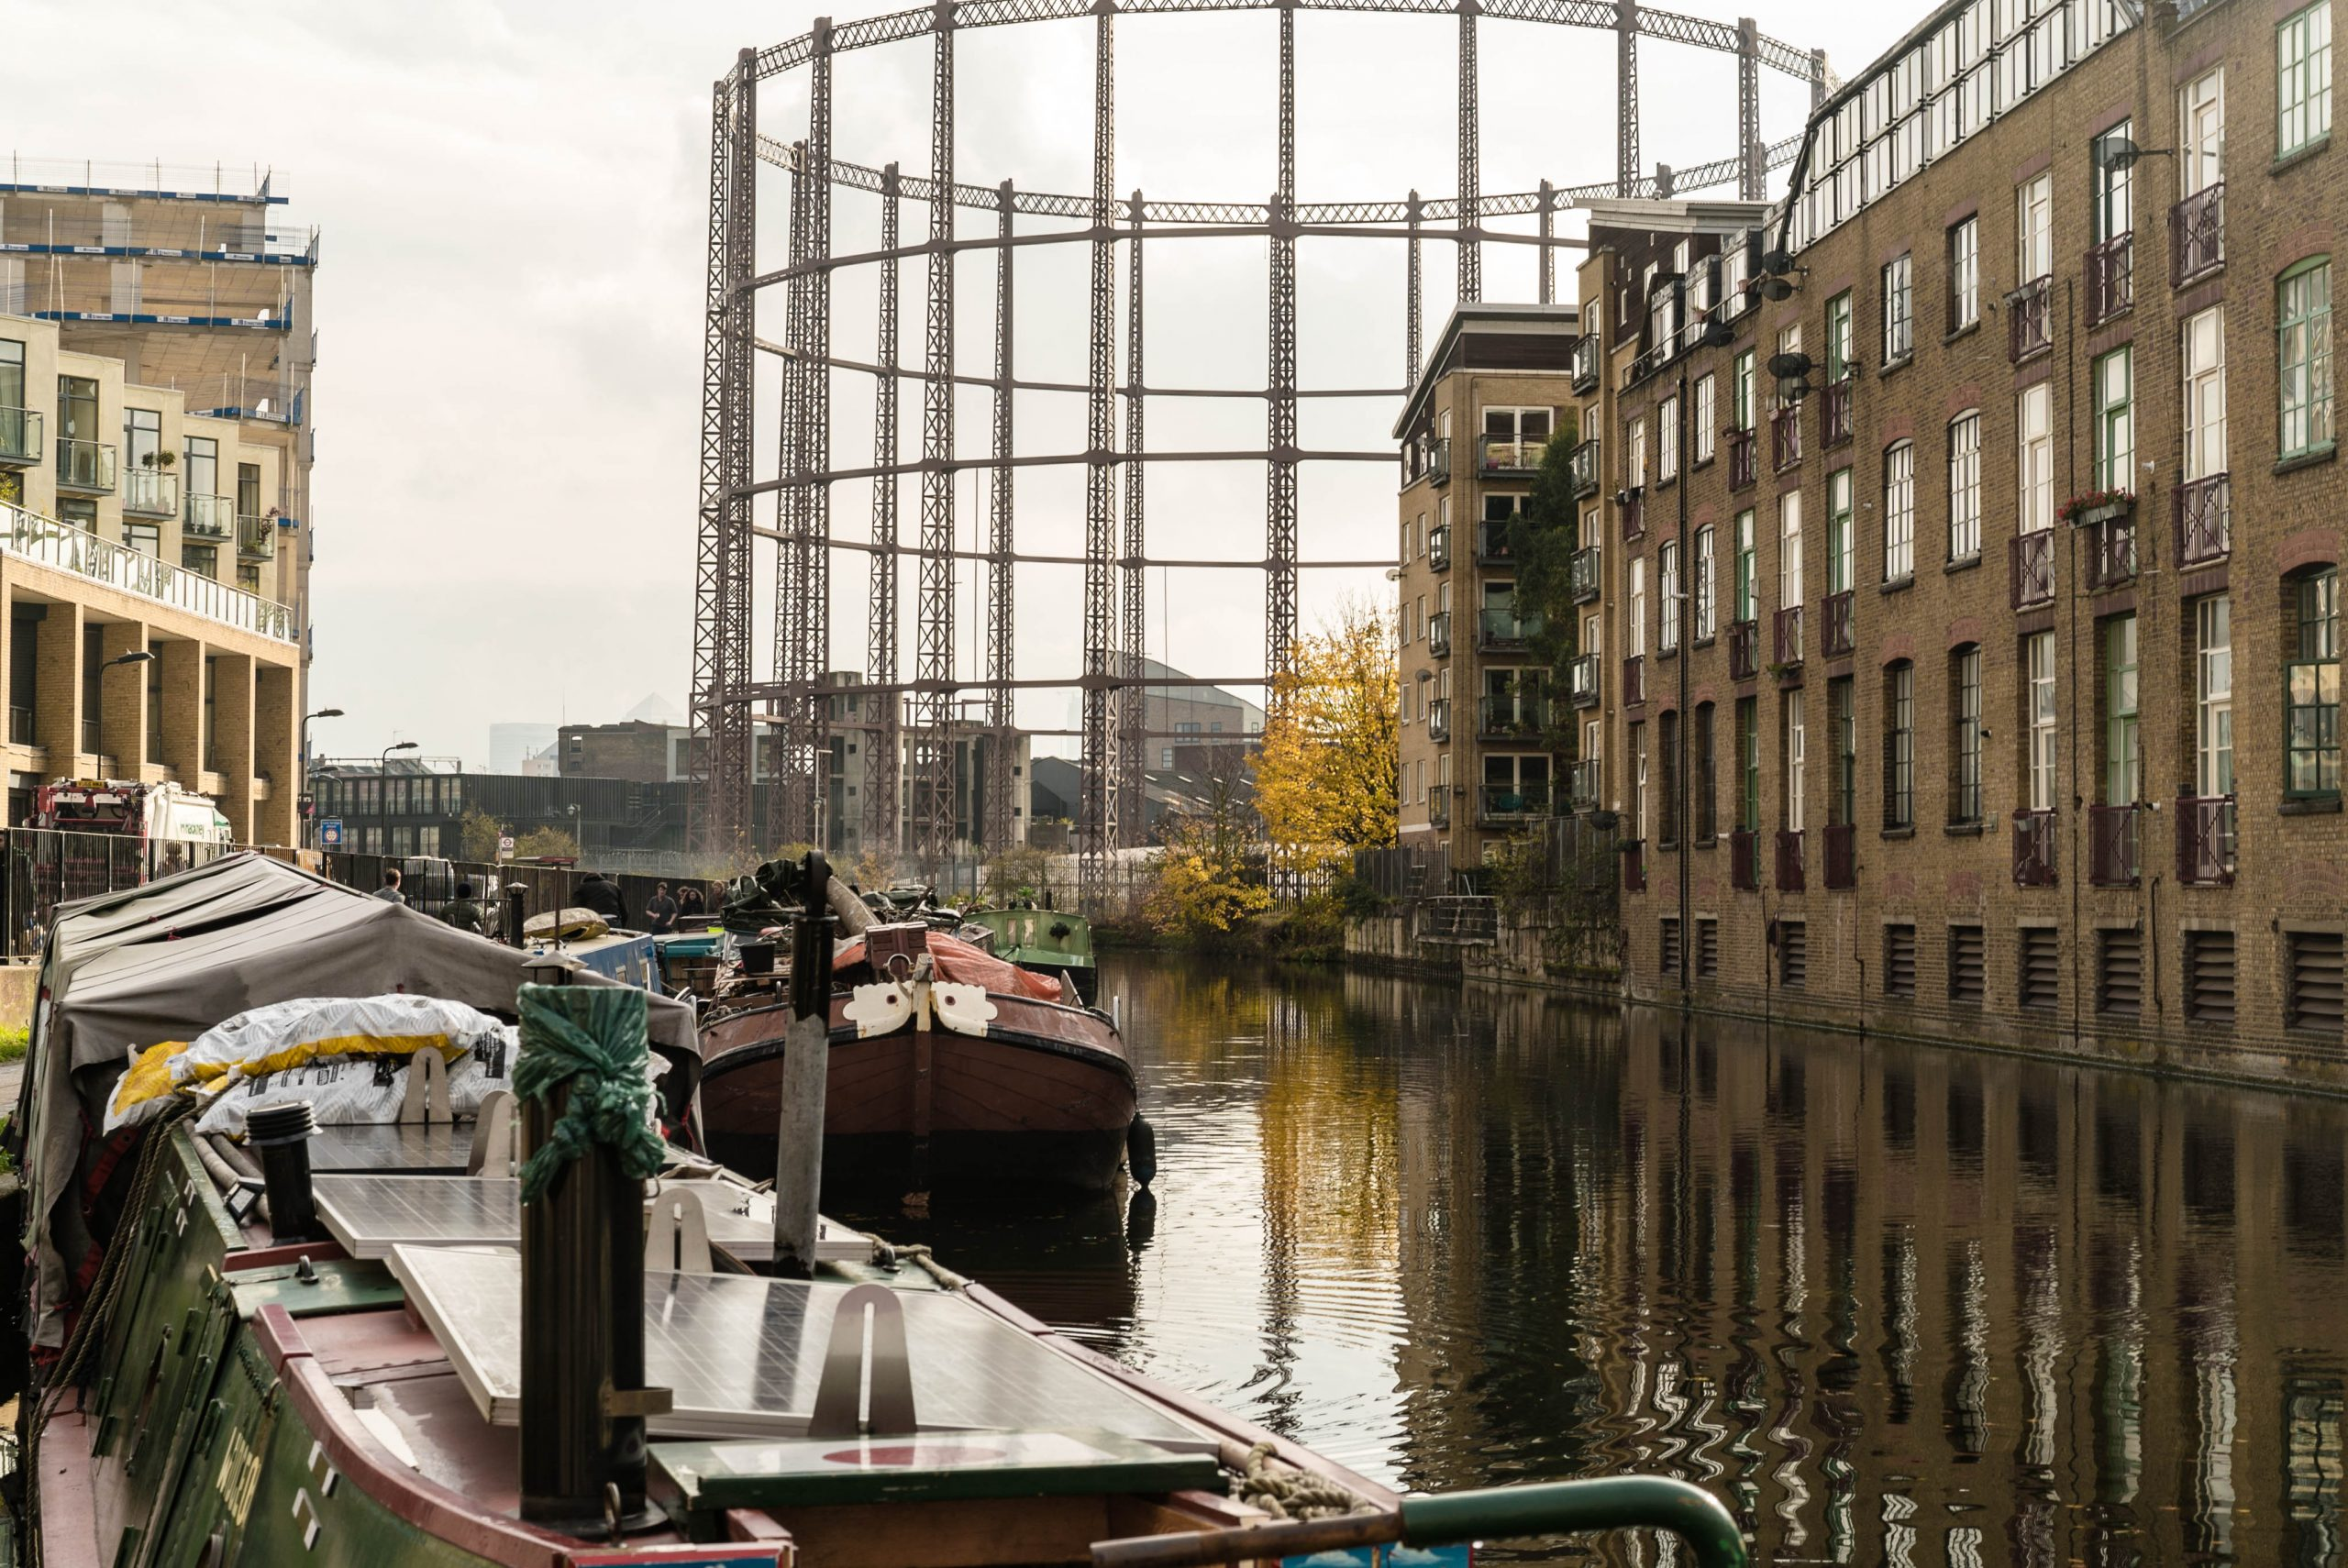 Regent's Canal: The Houseboats of Hackney